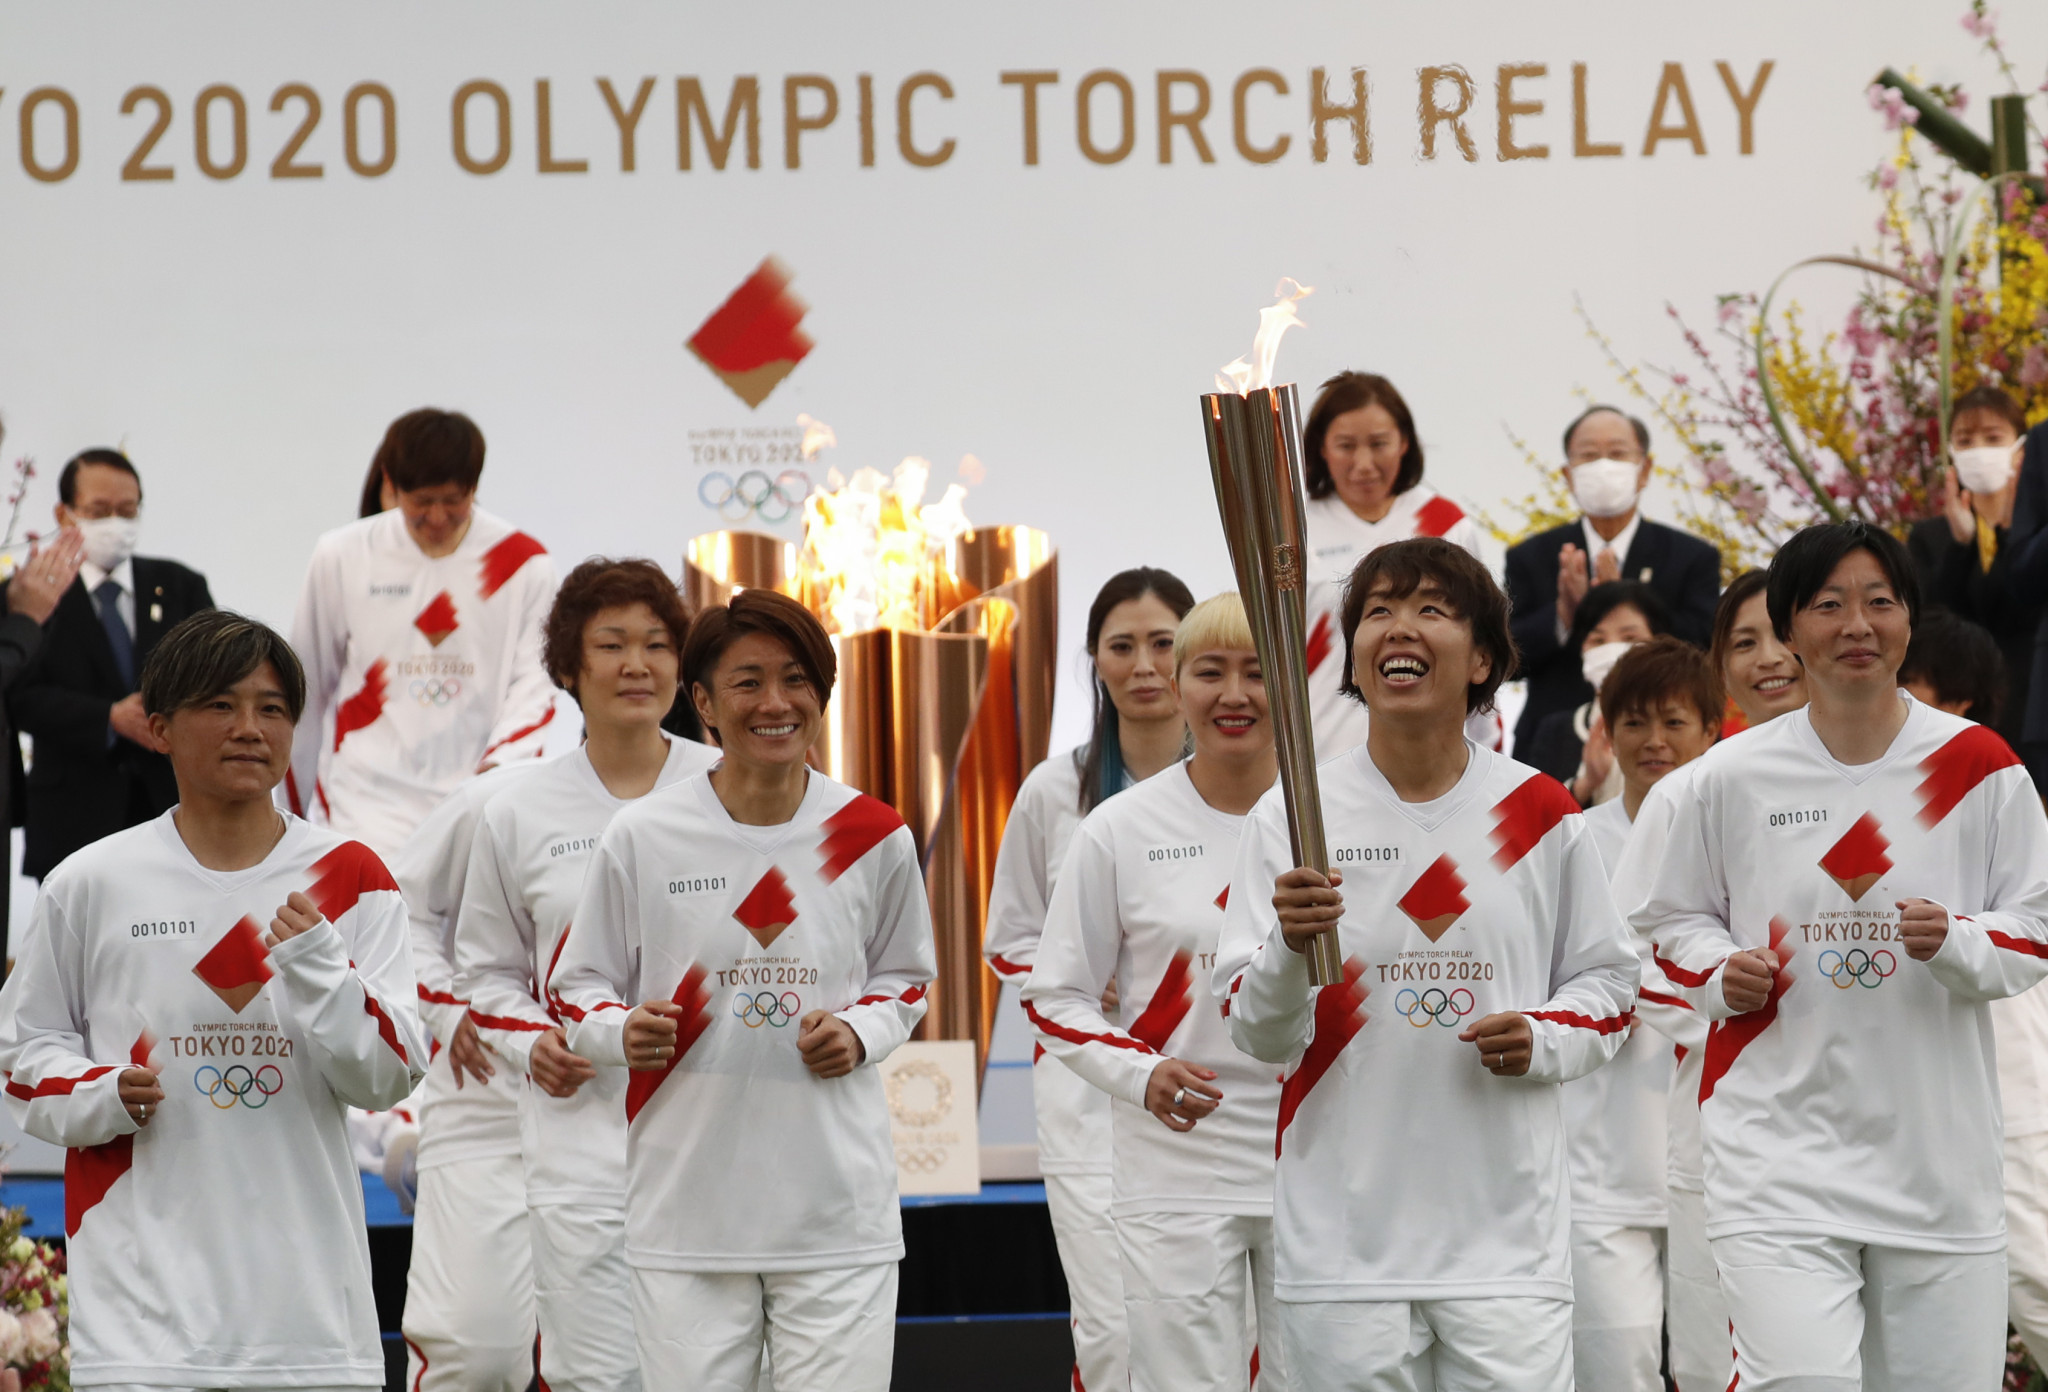 Azusa Iwashimizu was flanked by World Cup-winning team mates as she carried the Olympic Torch ©Getty Images